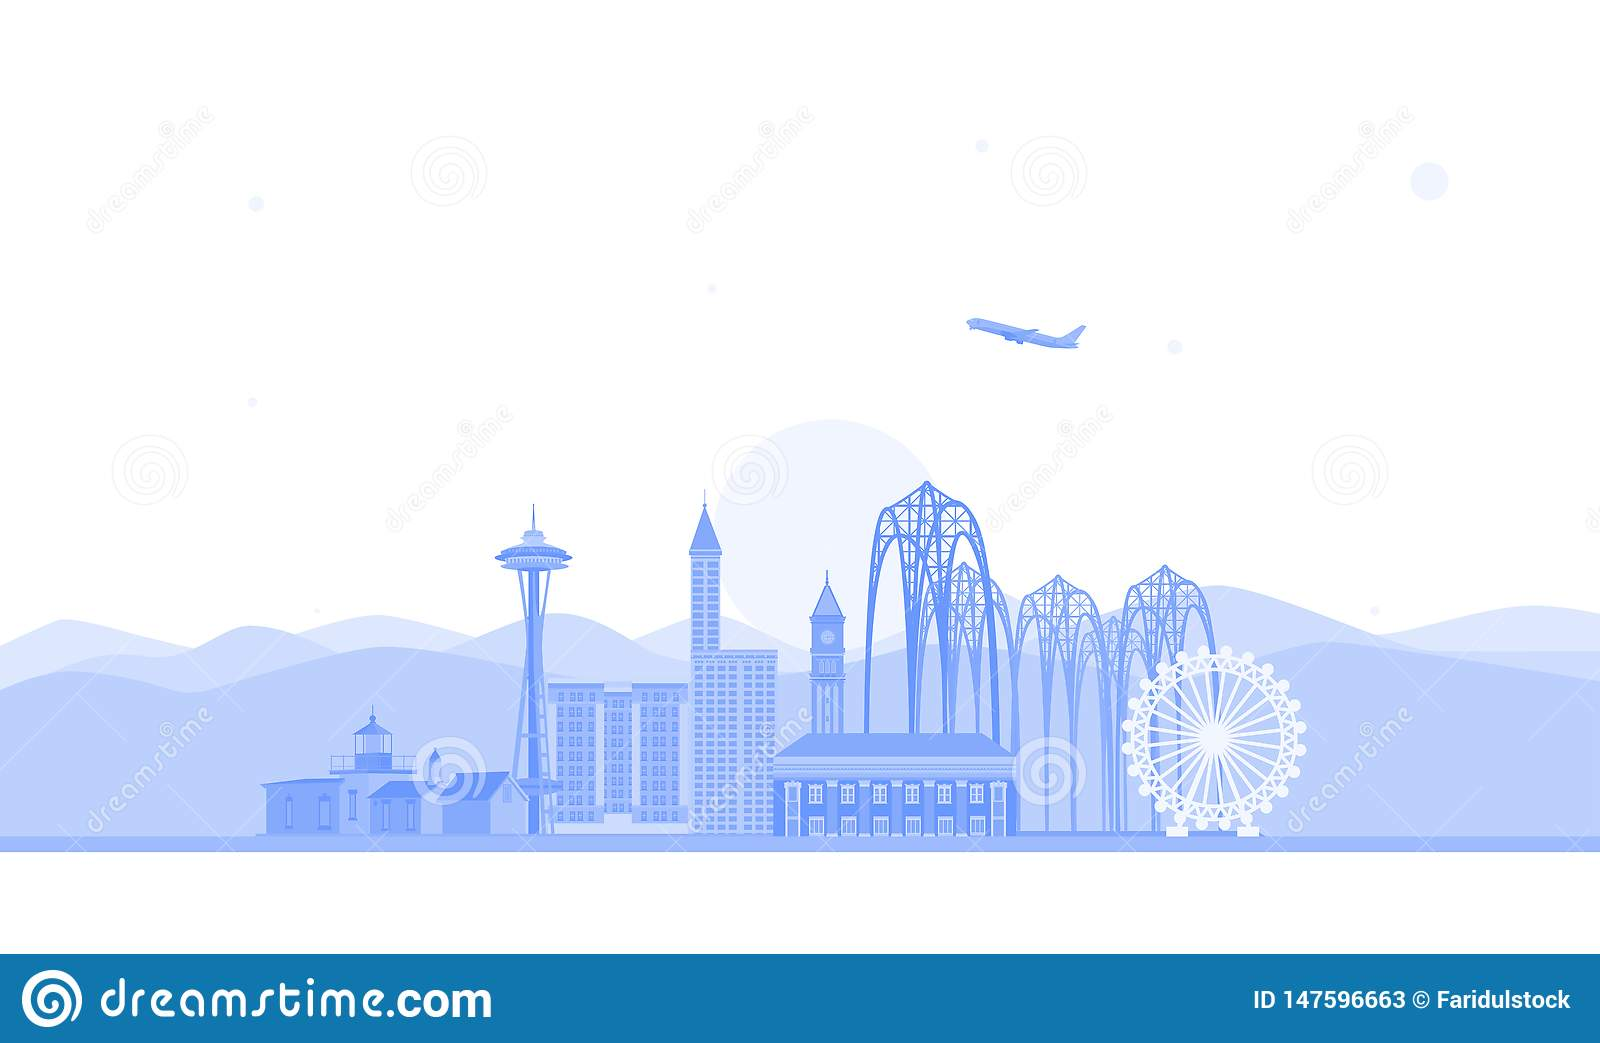 Seattle skyline illustration. Flat vector illustration. Business travel and tourism concept with modern buildings. Image for banne